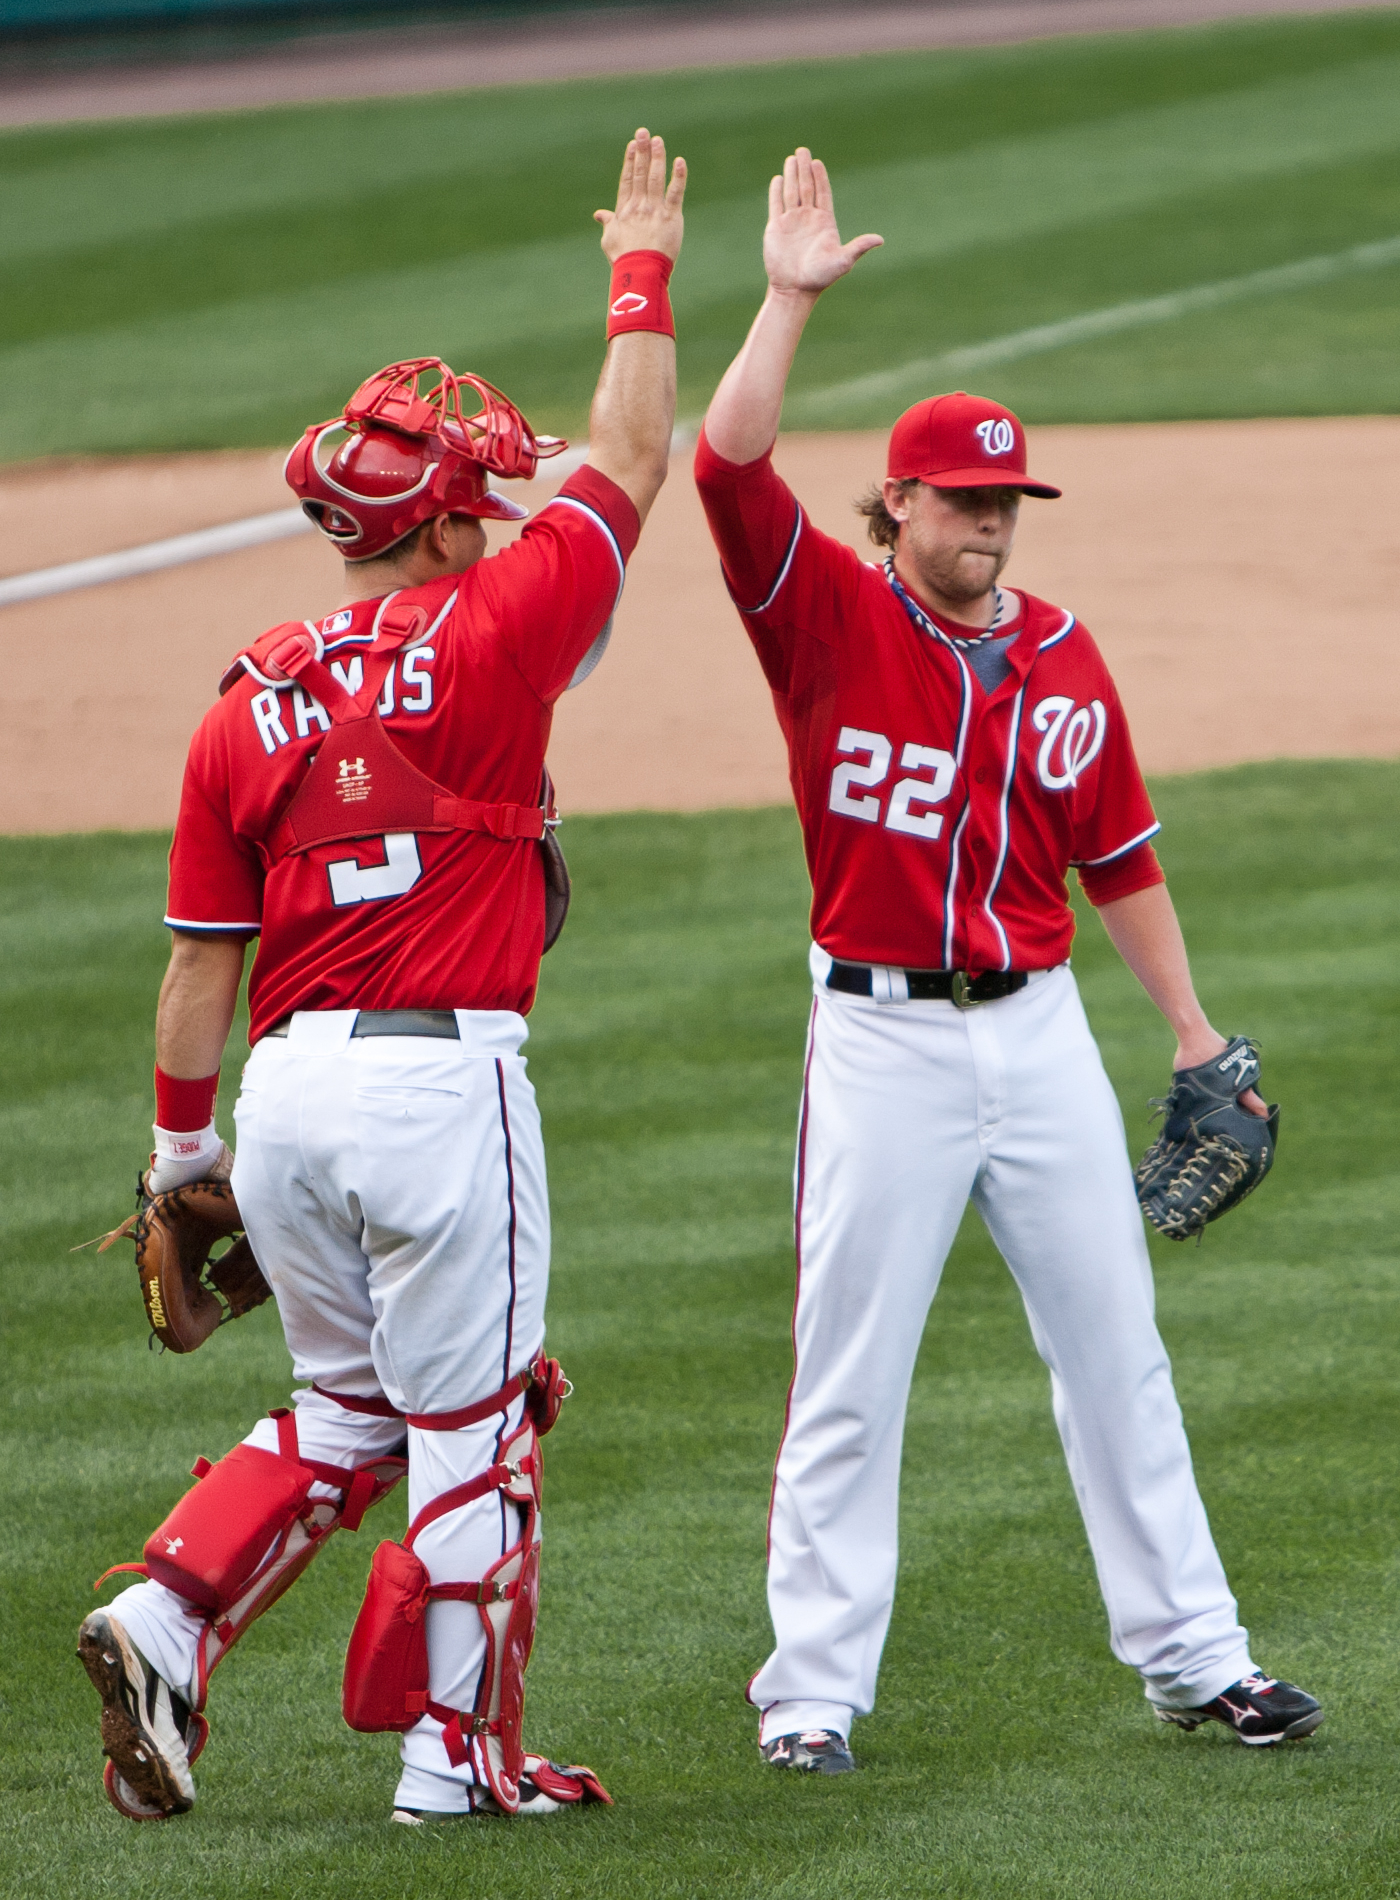 https://upload.wikimedia.org/wikipedia/commons/6/6f/9TH_Drew_Storen_and_Wilson_Ramos.jpg